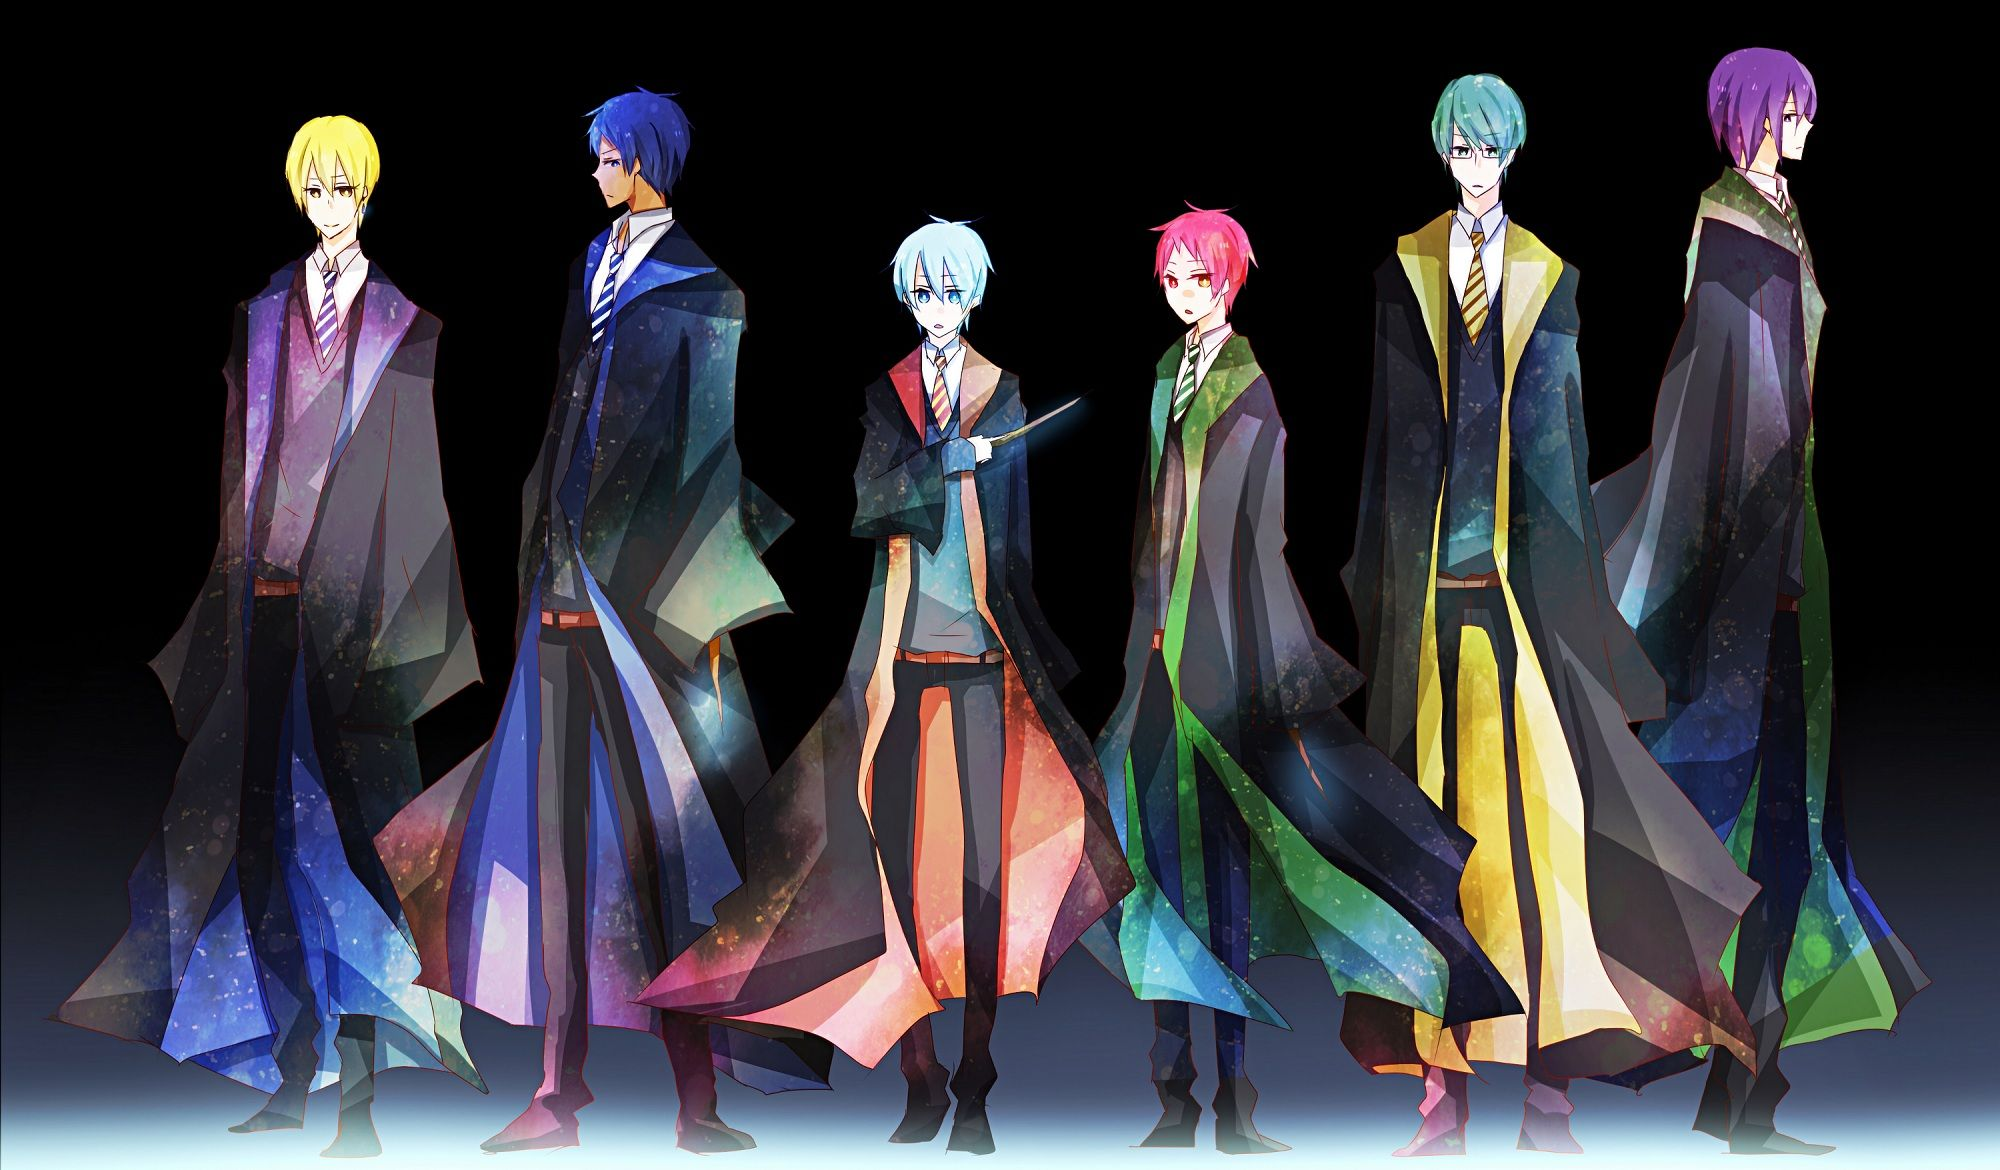 Kuroko no basket wallpapers google search knb shits pinterest kuroko no basket wallpapers google search voltagebd Gallery